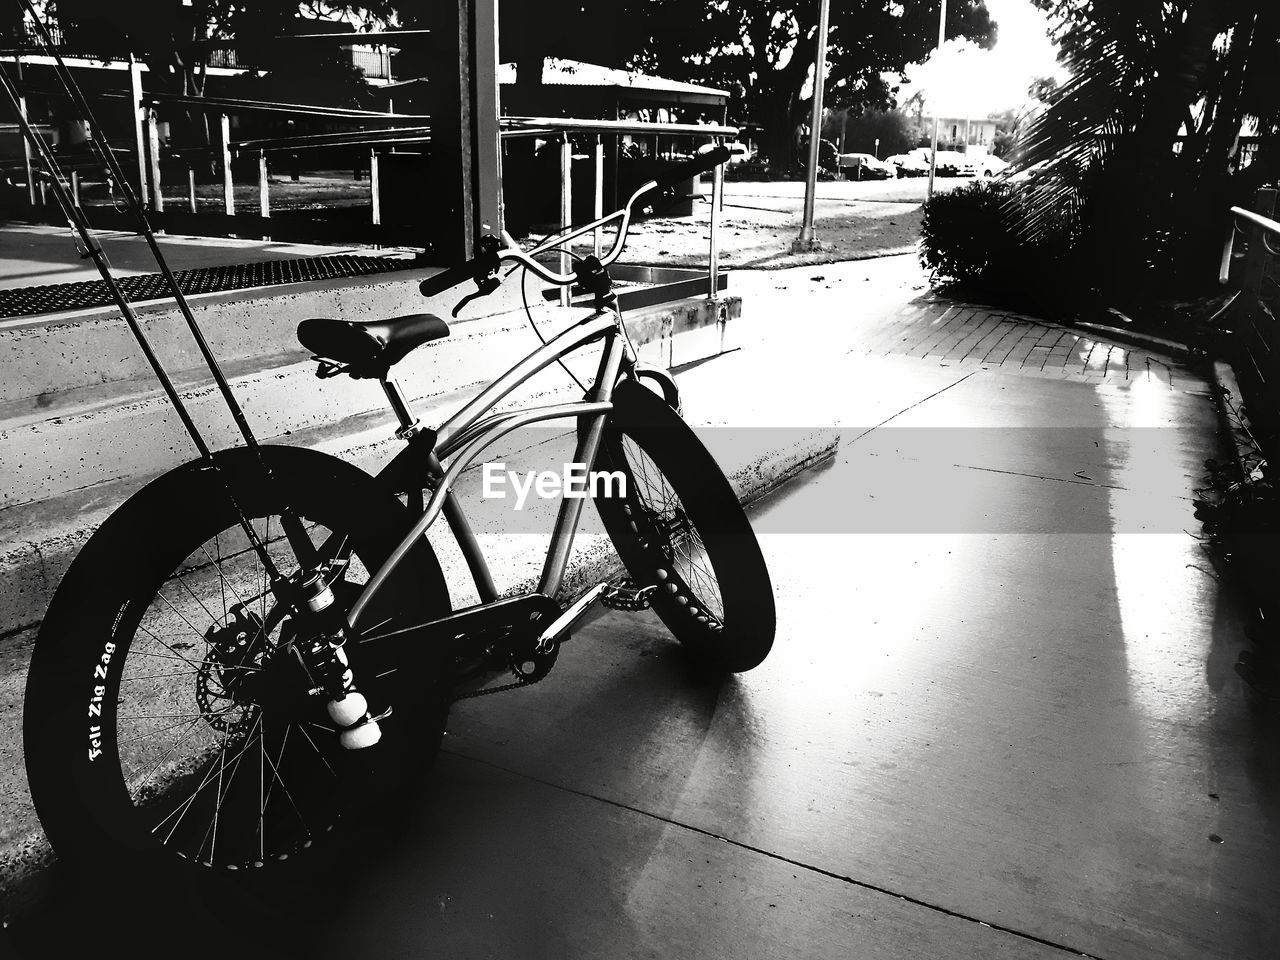 bicycle, transportation, mode of transport, land vehicle, wheel, stationary, no people, day, outdoors, built structure, bicycle rack, tire, architecture